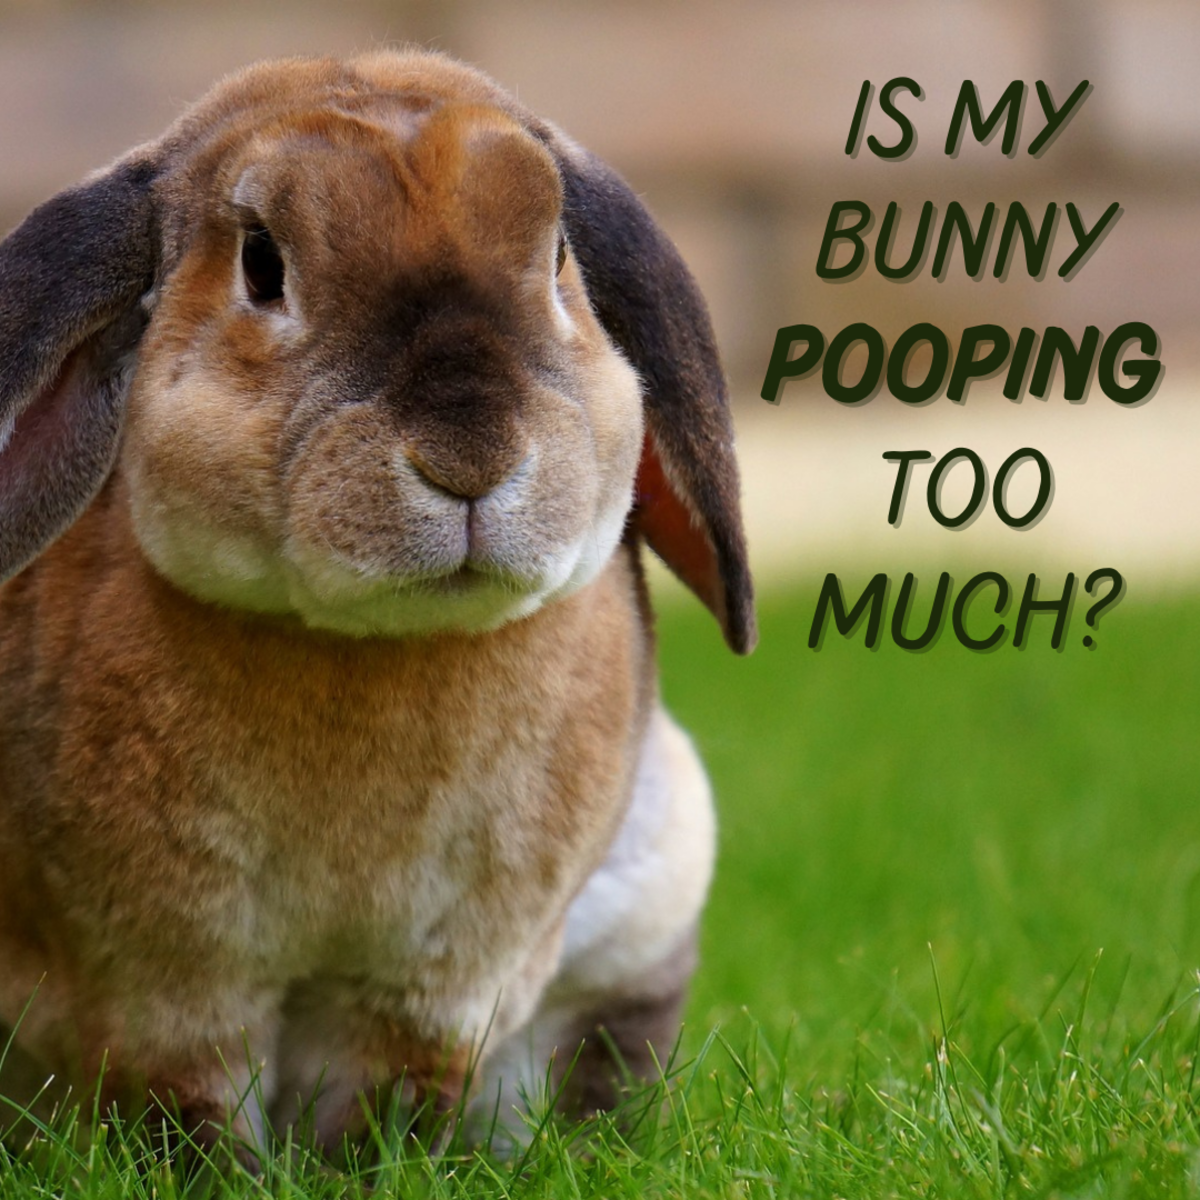 Why Does My Bunny Poop so Much?